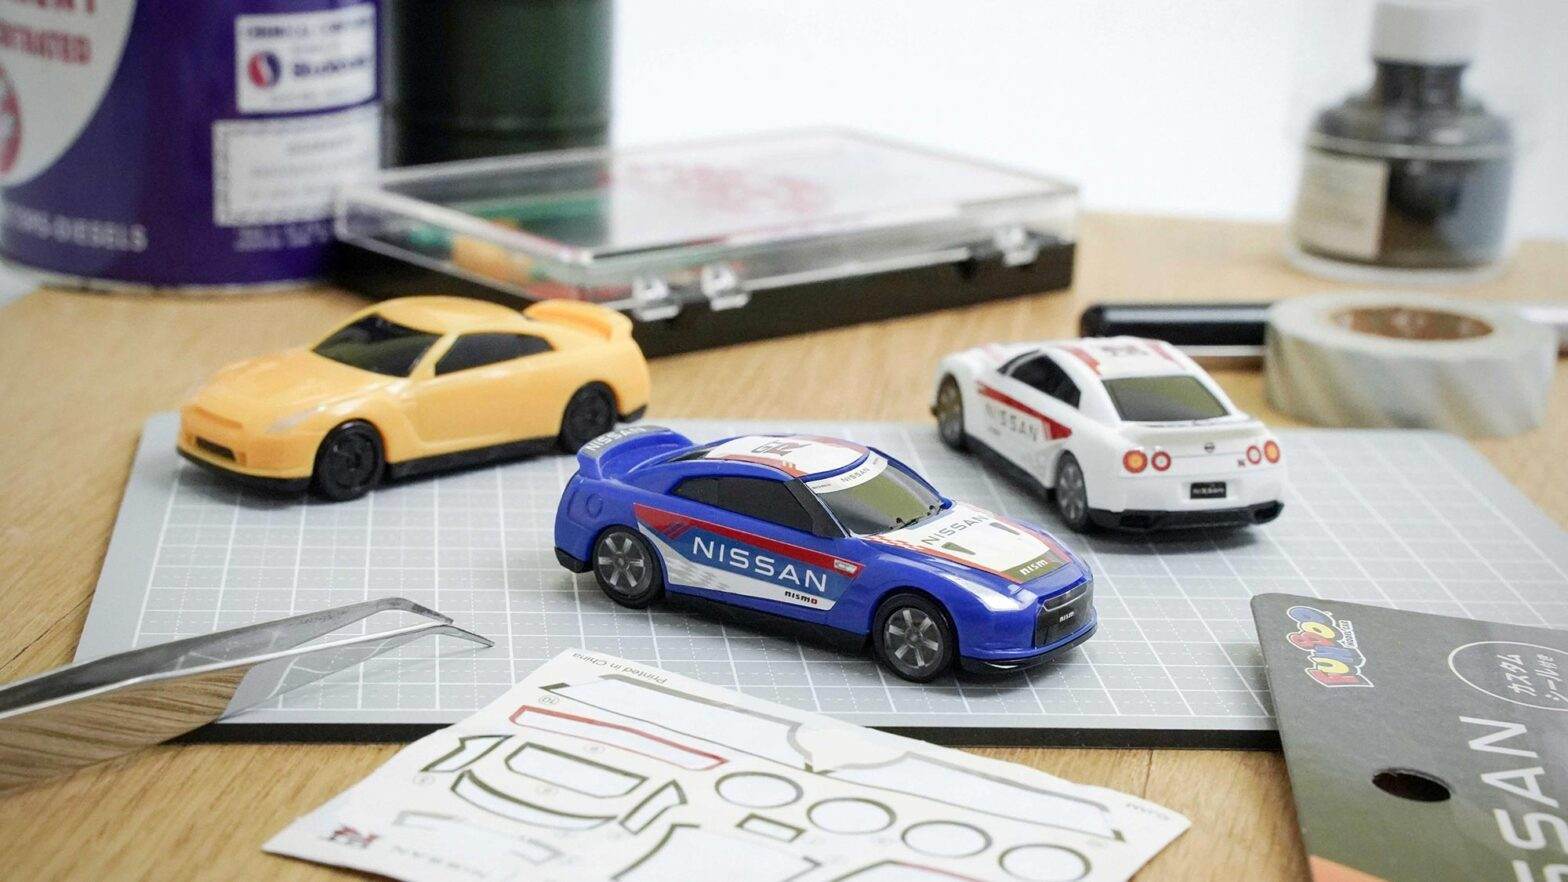 FUNBOO Nissan GT-R Toy Cars by Jam Corp